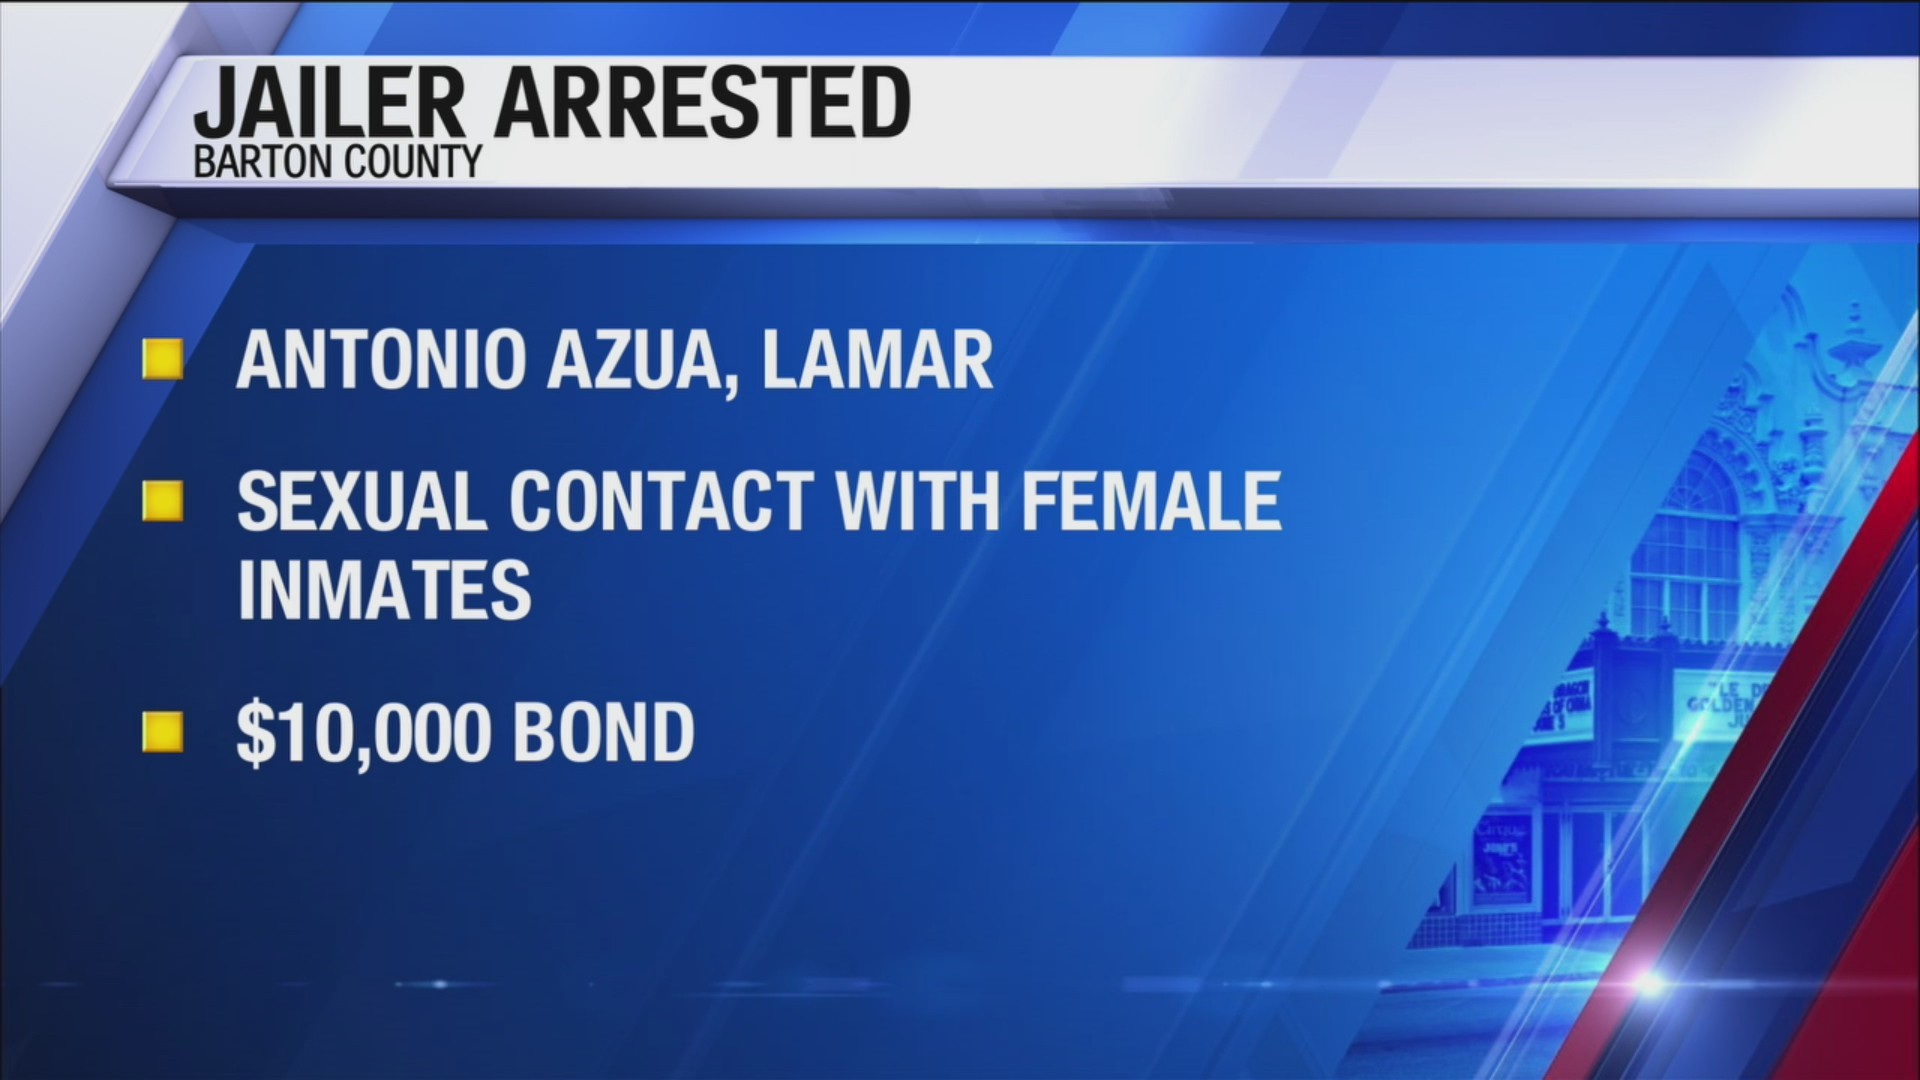 Barton county jailer arrested for sexual contact with inmates